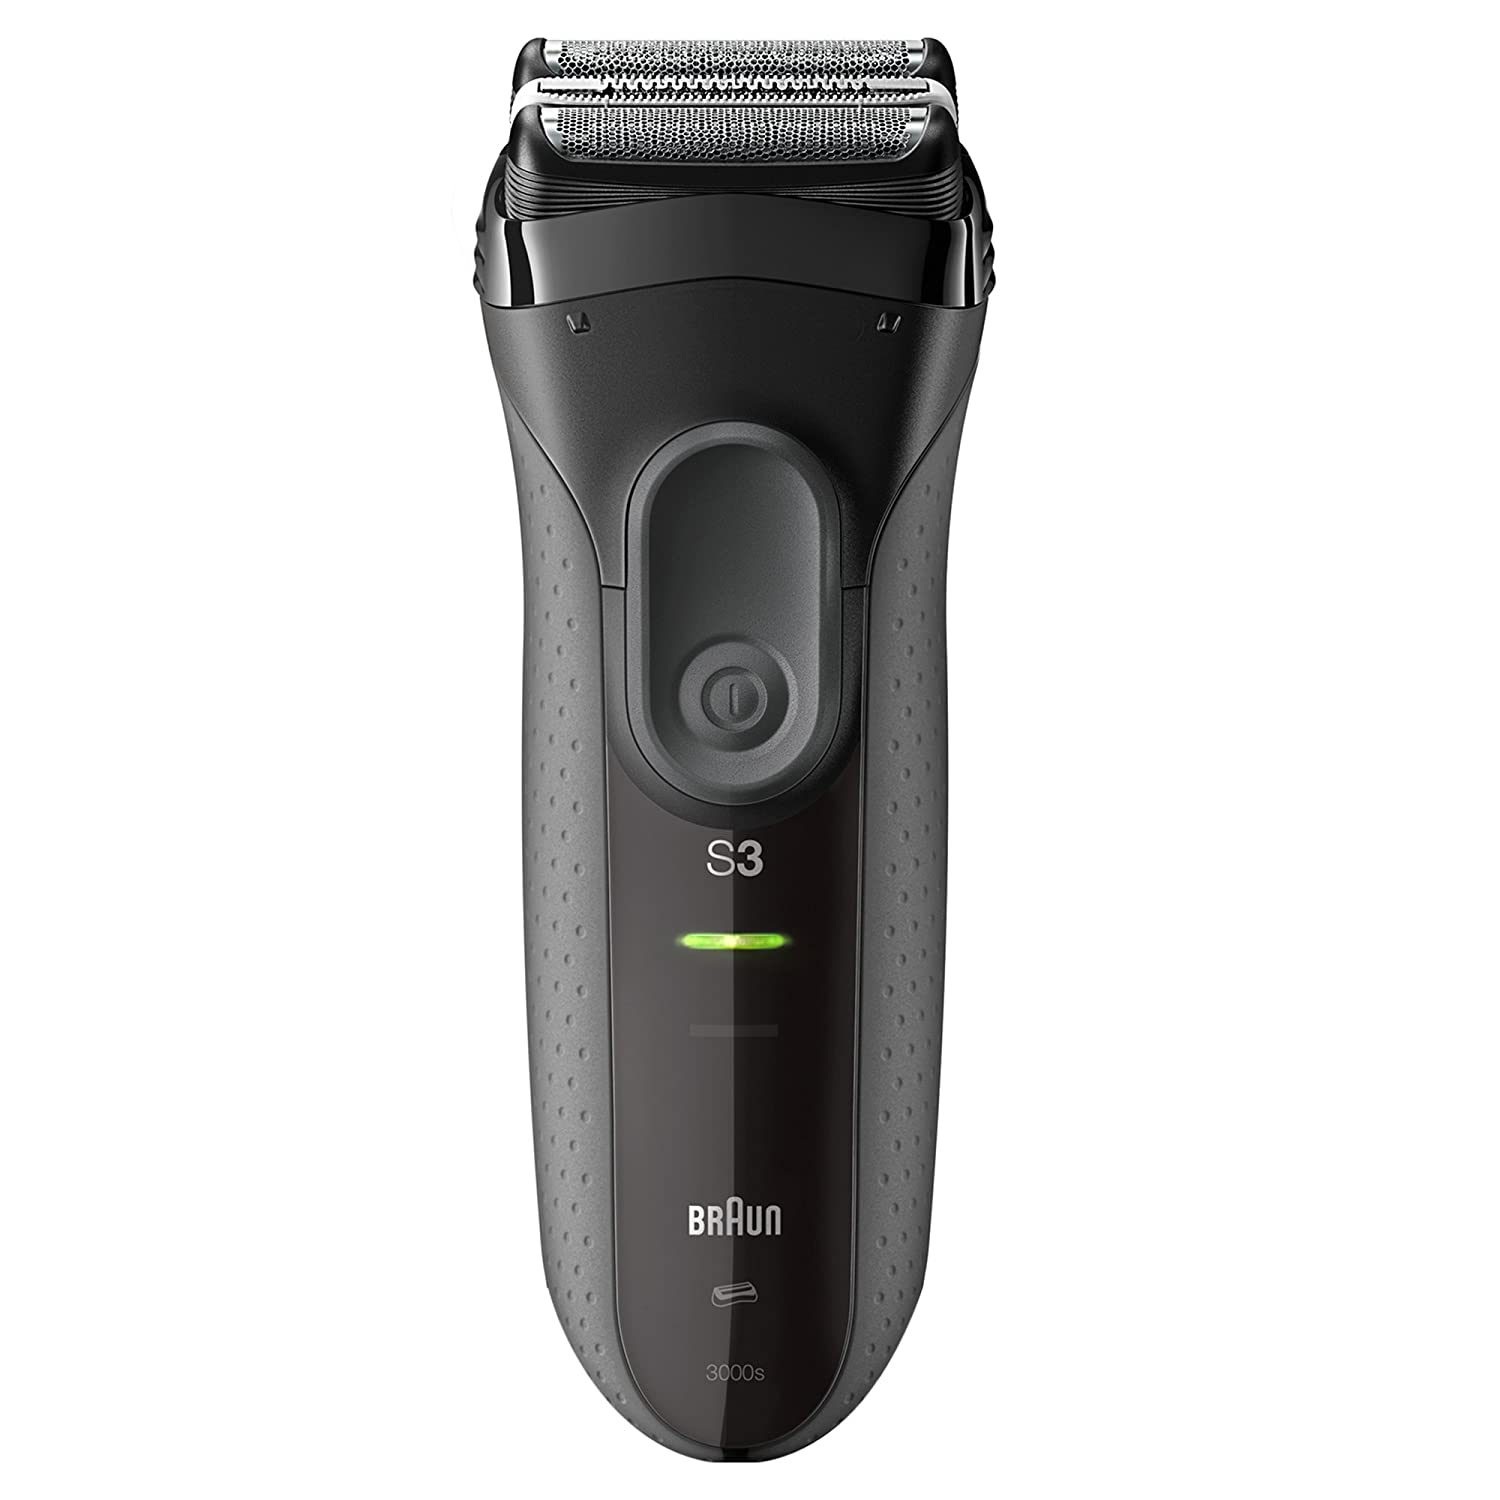 Braun Series 3 ProSkin 3000s Rechargeable Electric Razor